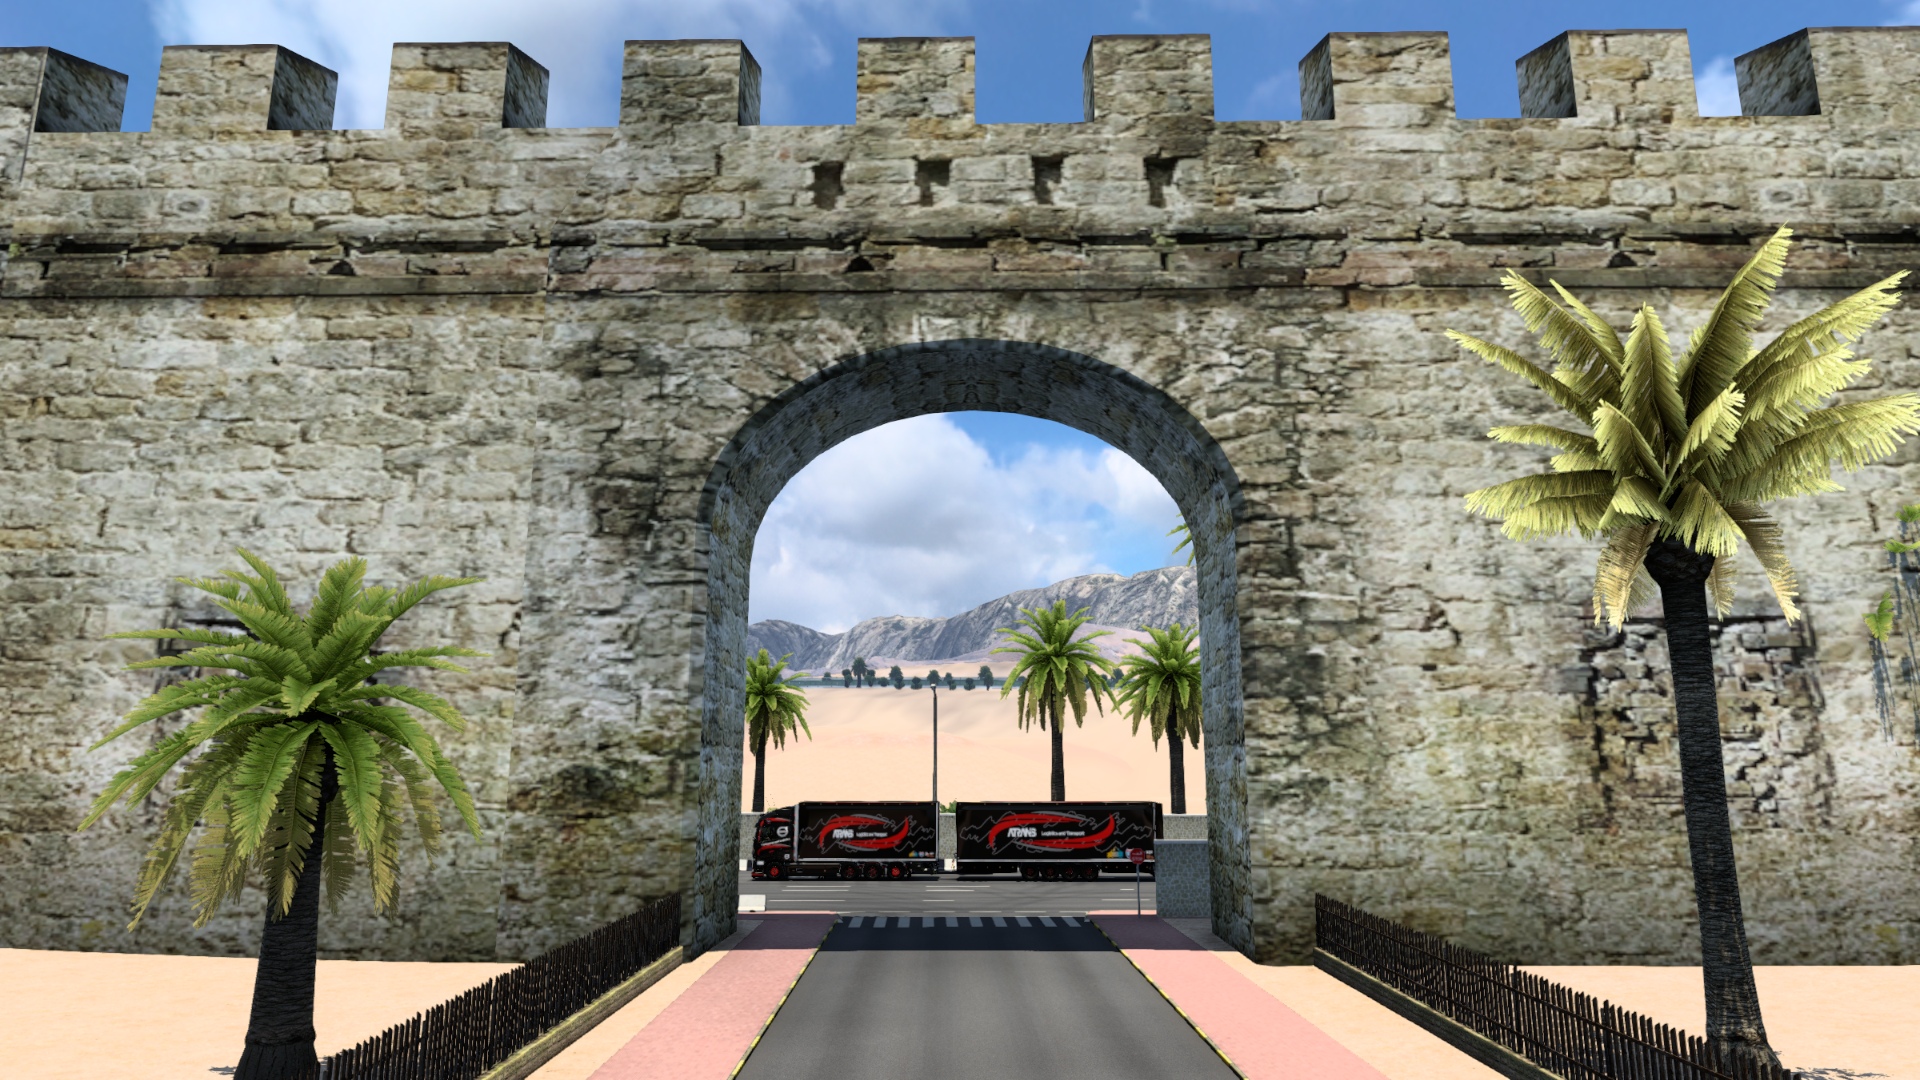 ets2_20210918_120829_00.png